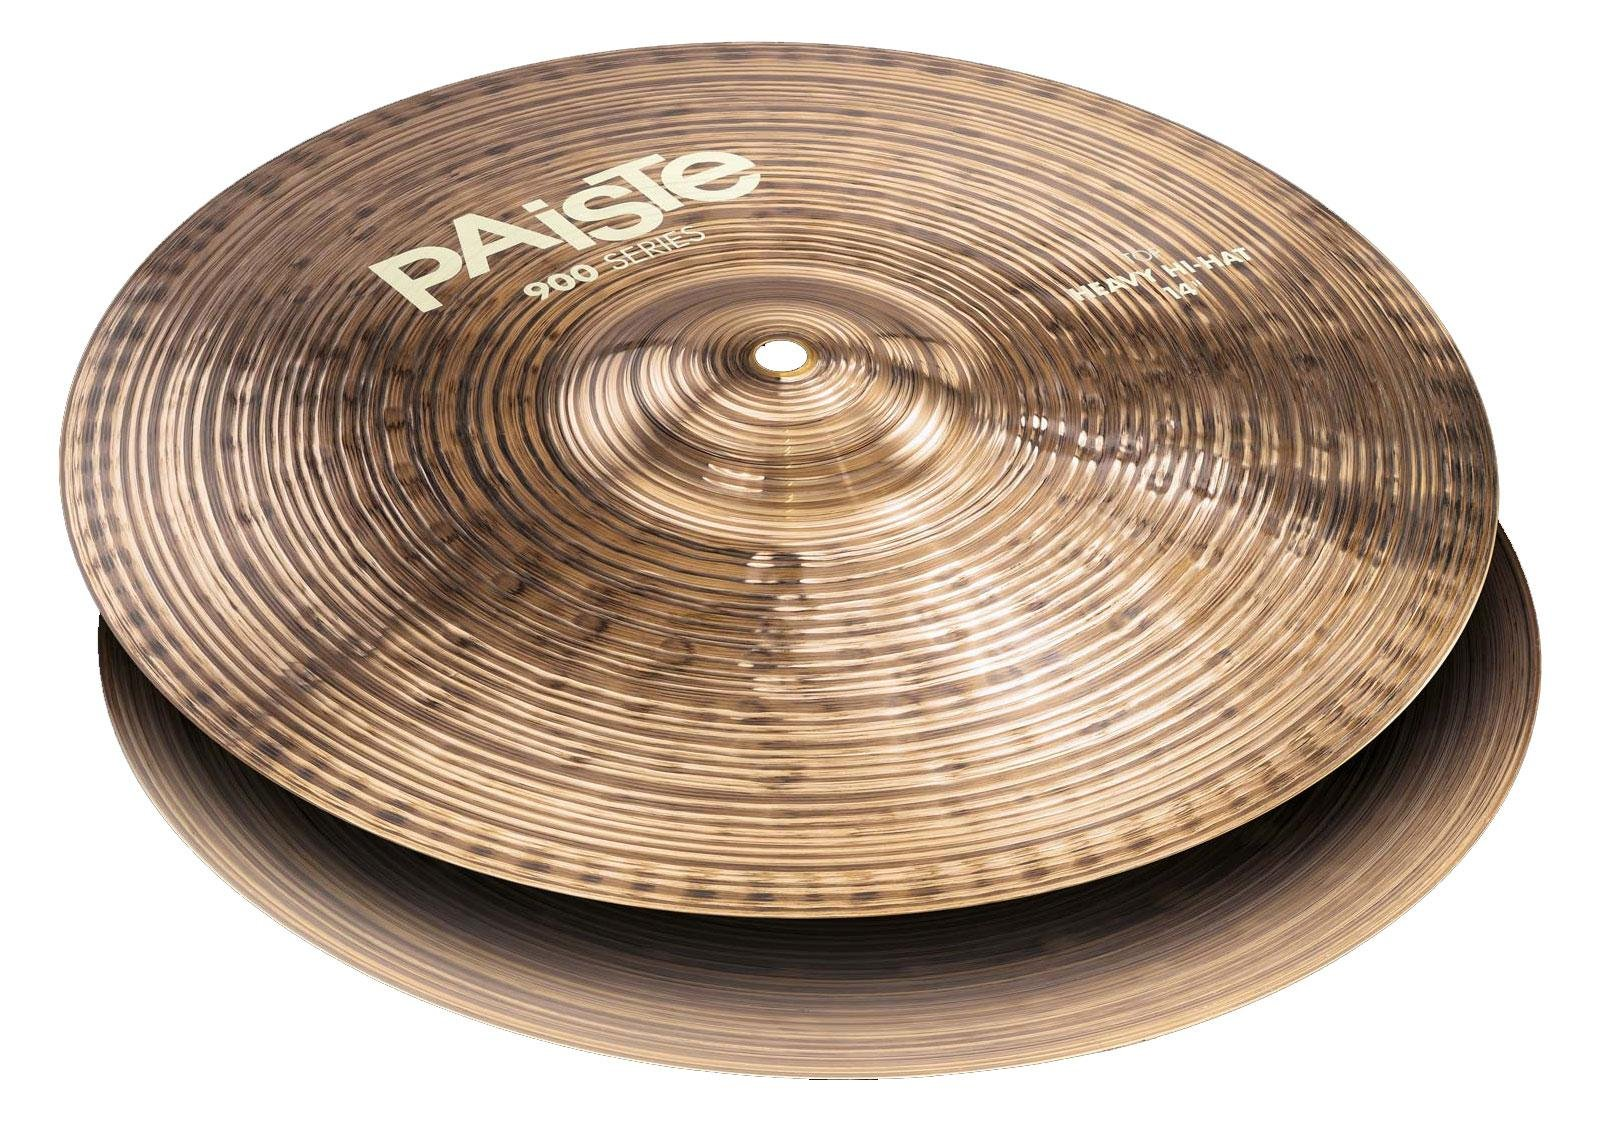 Paiste 14 Inches 900 Series Heavy Hi-Hat Cymbals